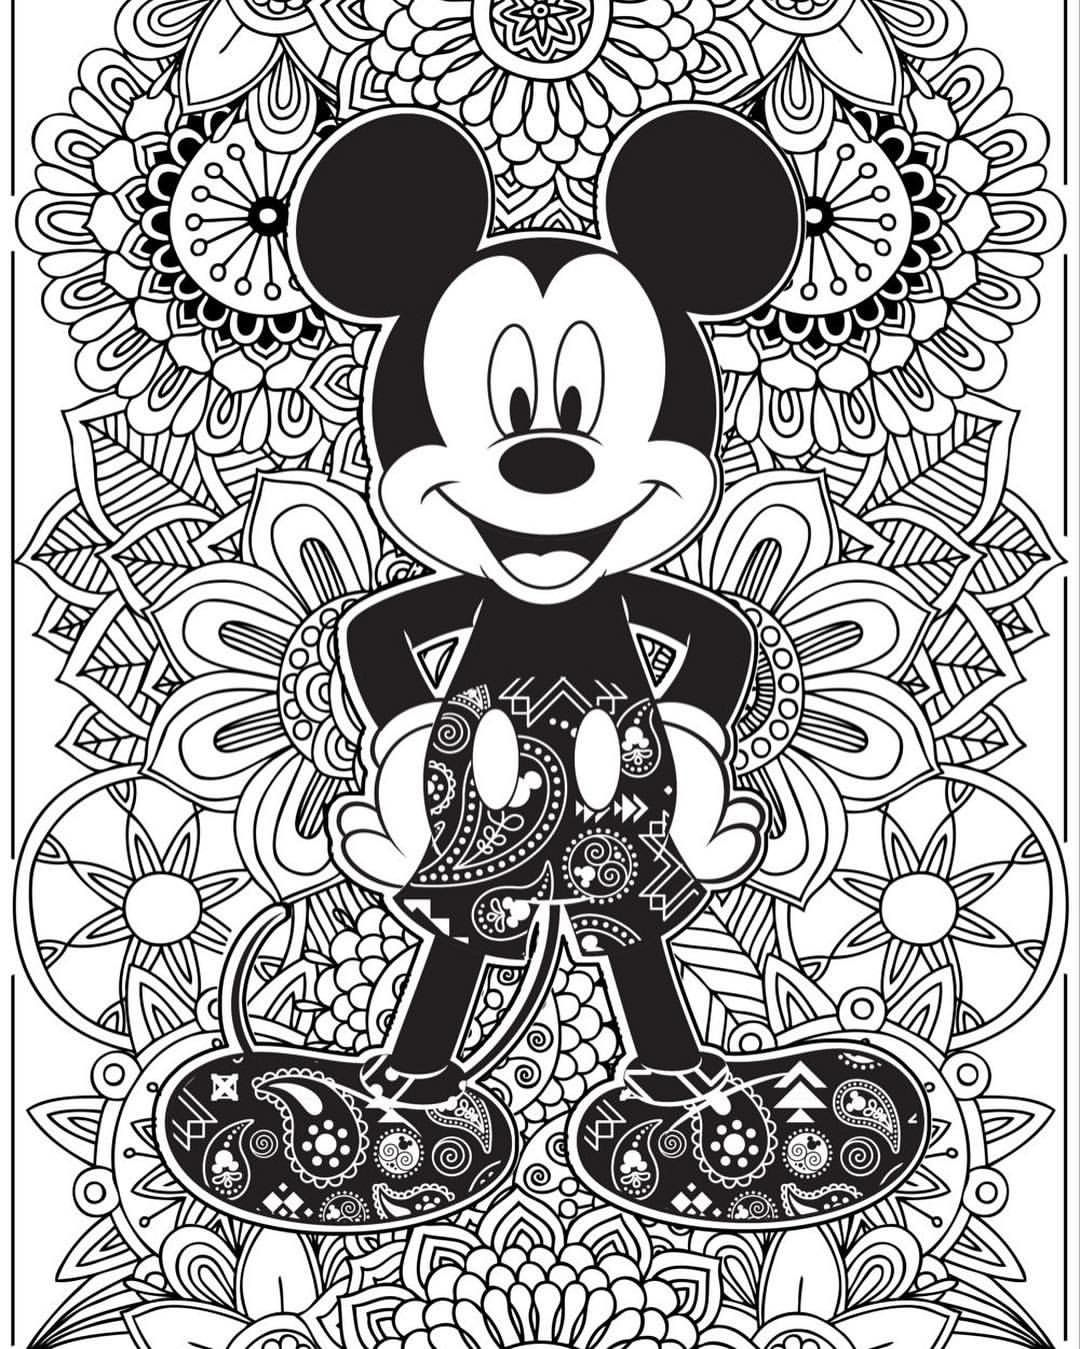 Pin By Jennifer Pepper On Ava Board Disney Coloring Sheets Mickey Mouse Coloring Pages Disney Coloring Pages